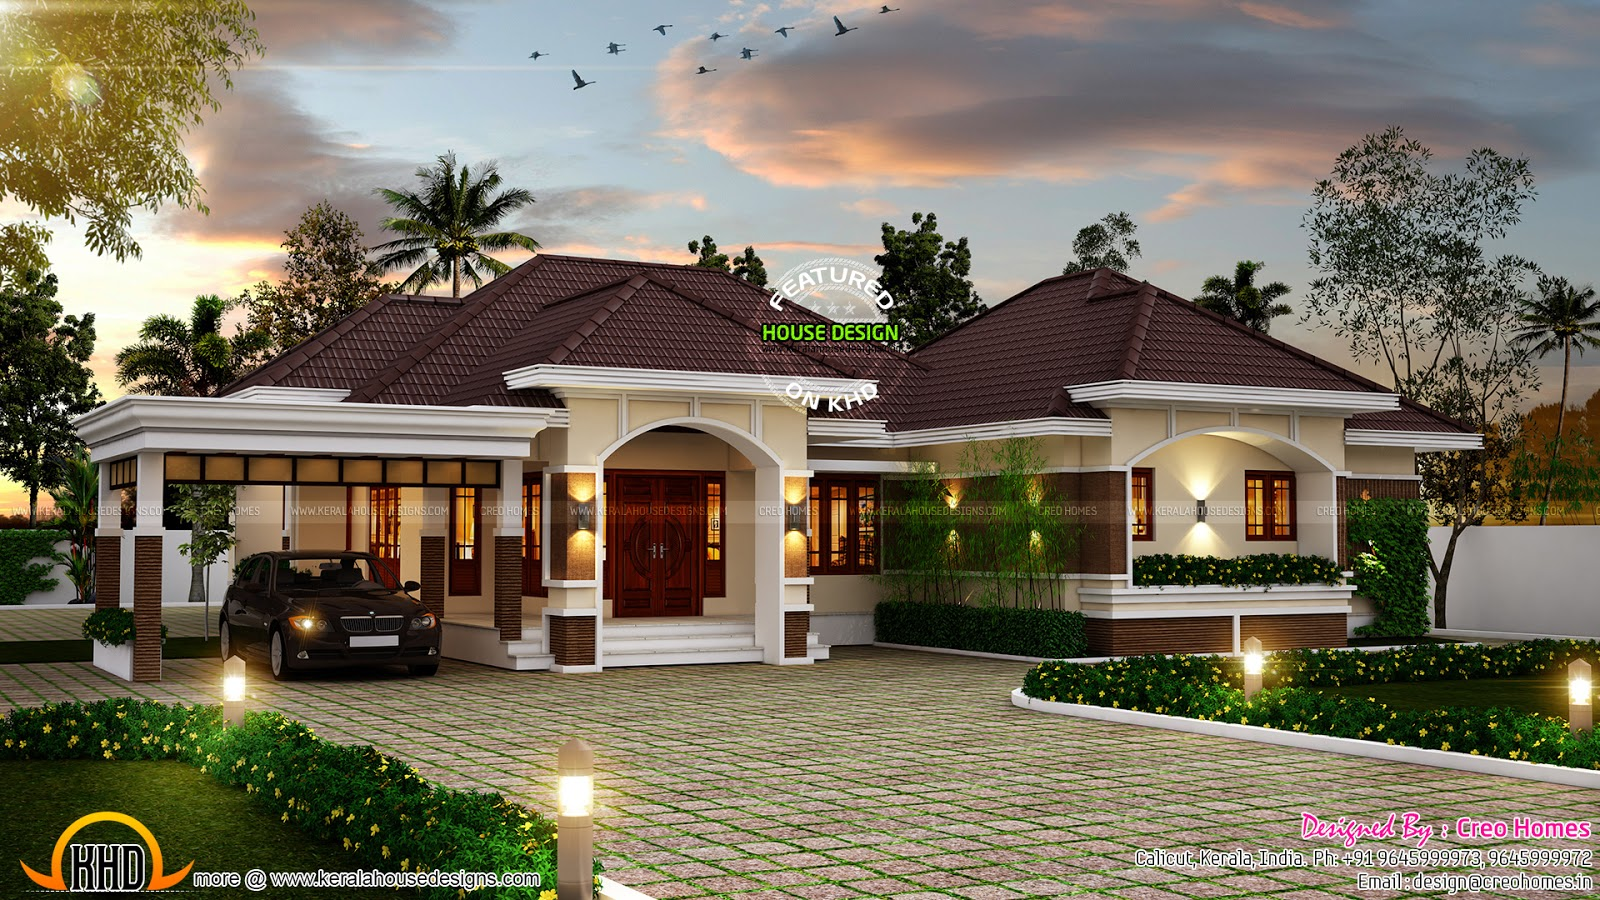 Outstanding bungalow in kerala kerala home design and for Kerala new home pictures